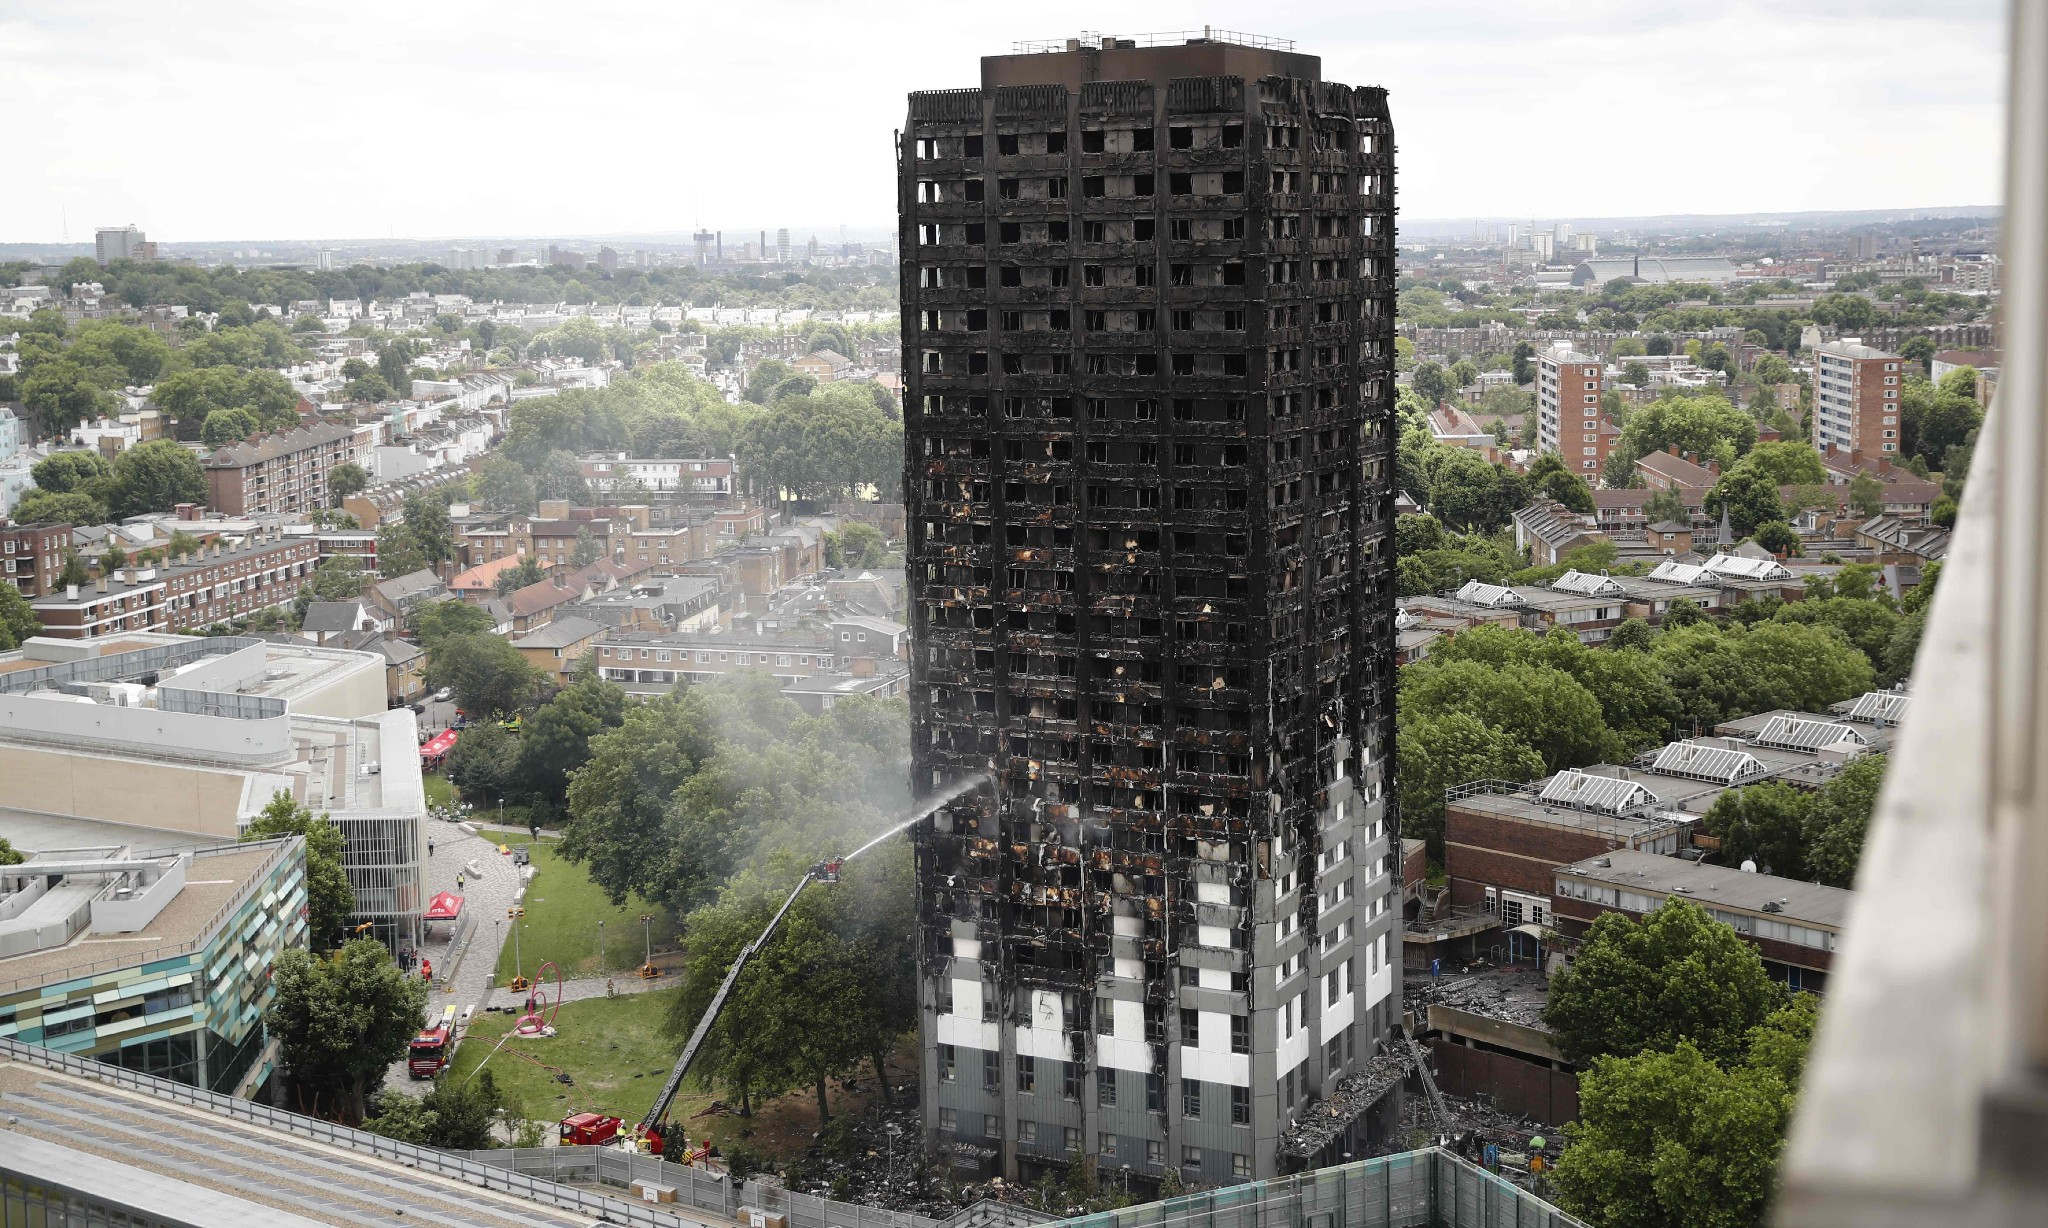 Theresa May announces public inquiry into Grenfell Tower fire